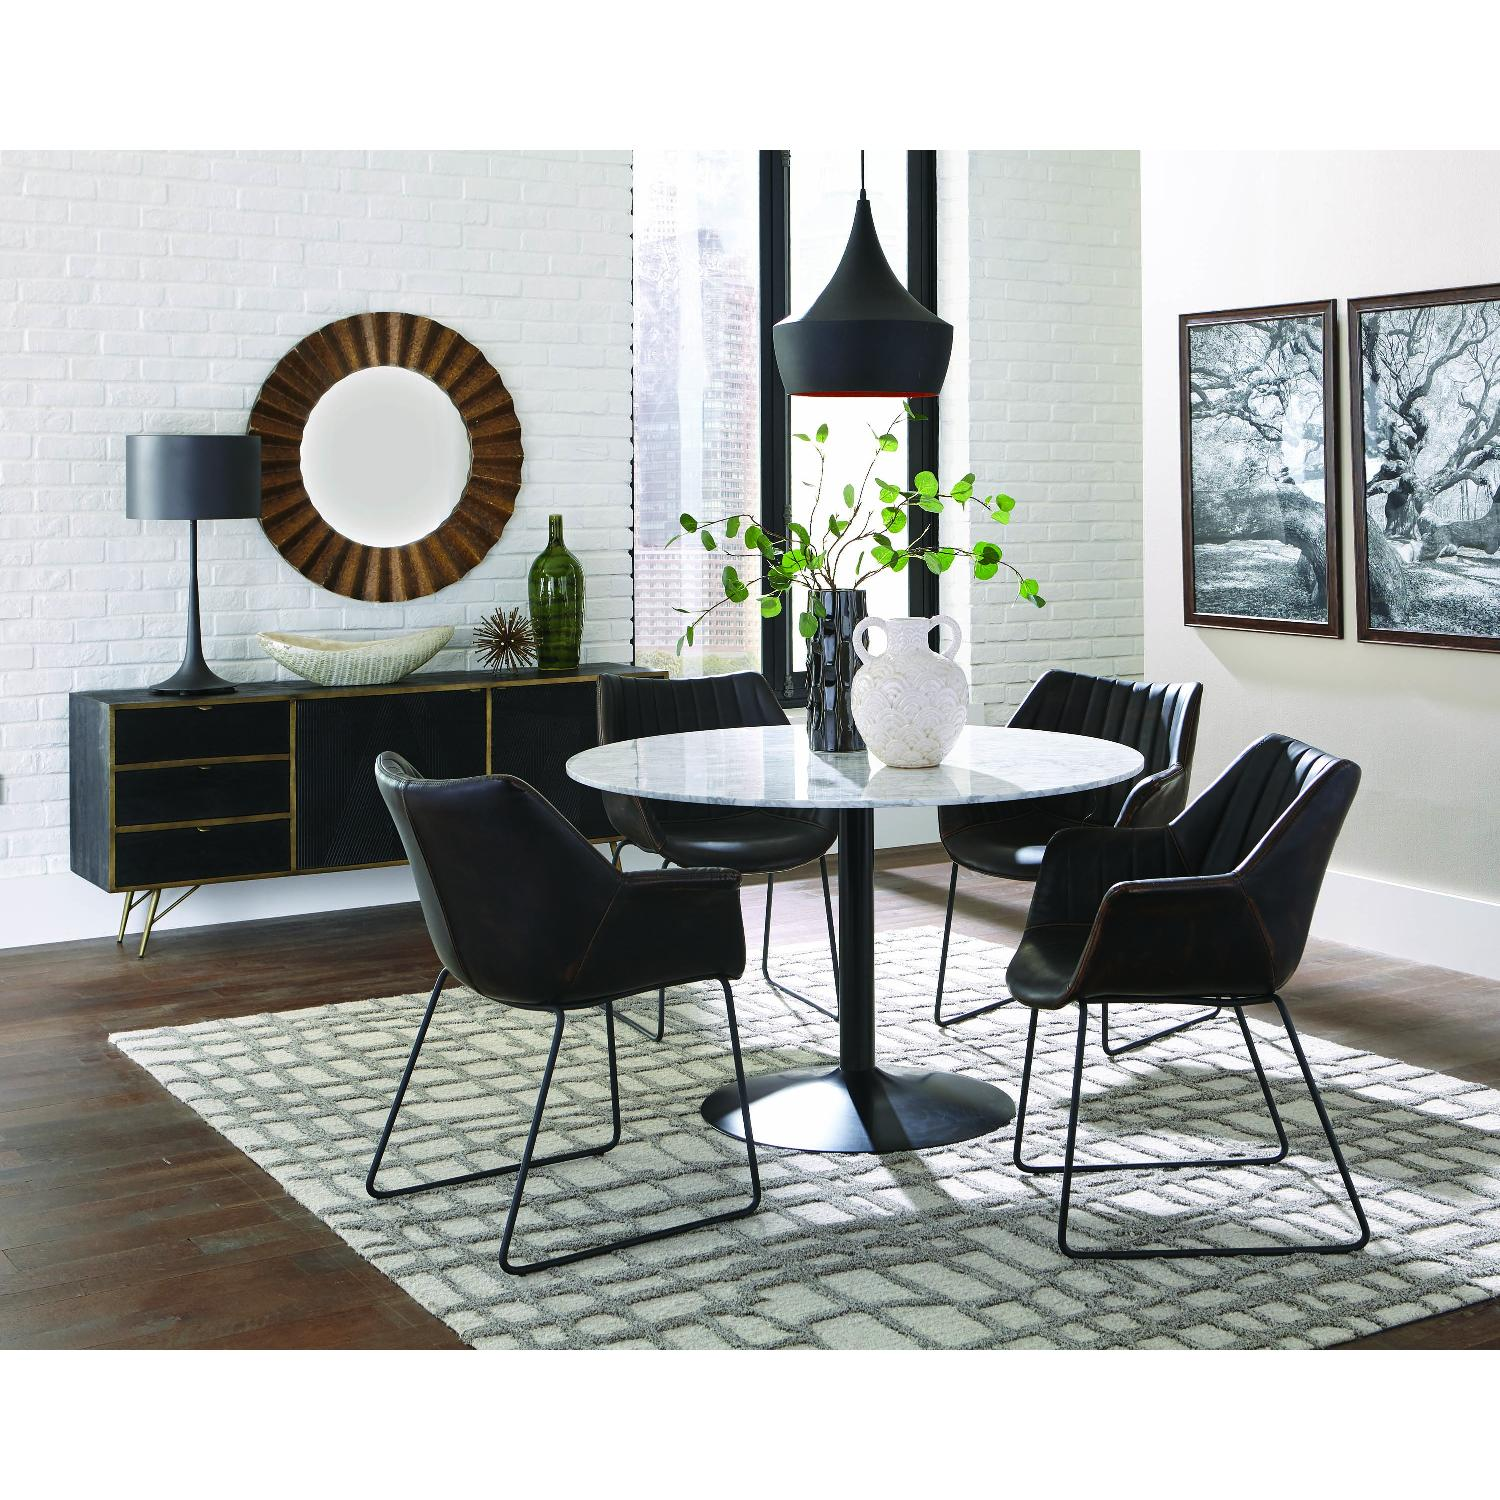 Modern Italian Marble Top Dining Table w/ Black Base - image-4